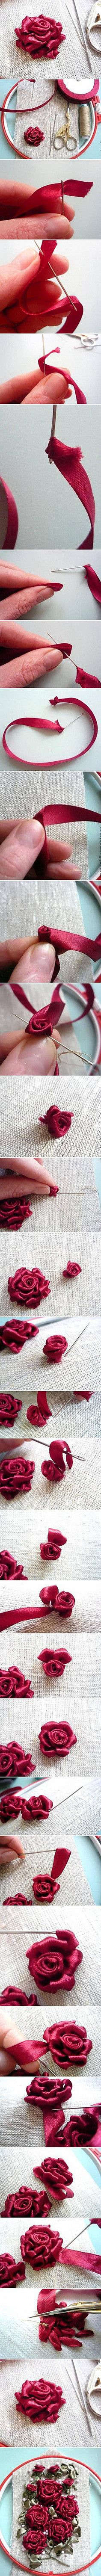 """......""""a rose is a rose"""".....and this one is exceptional! the picture tutorial is very inspiring, too. it makes me want to create a few....in soft shades of pinks, yellows, etc....."""